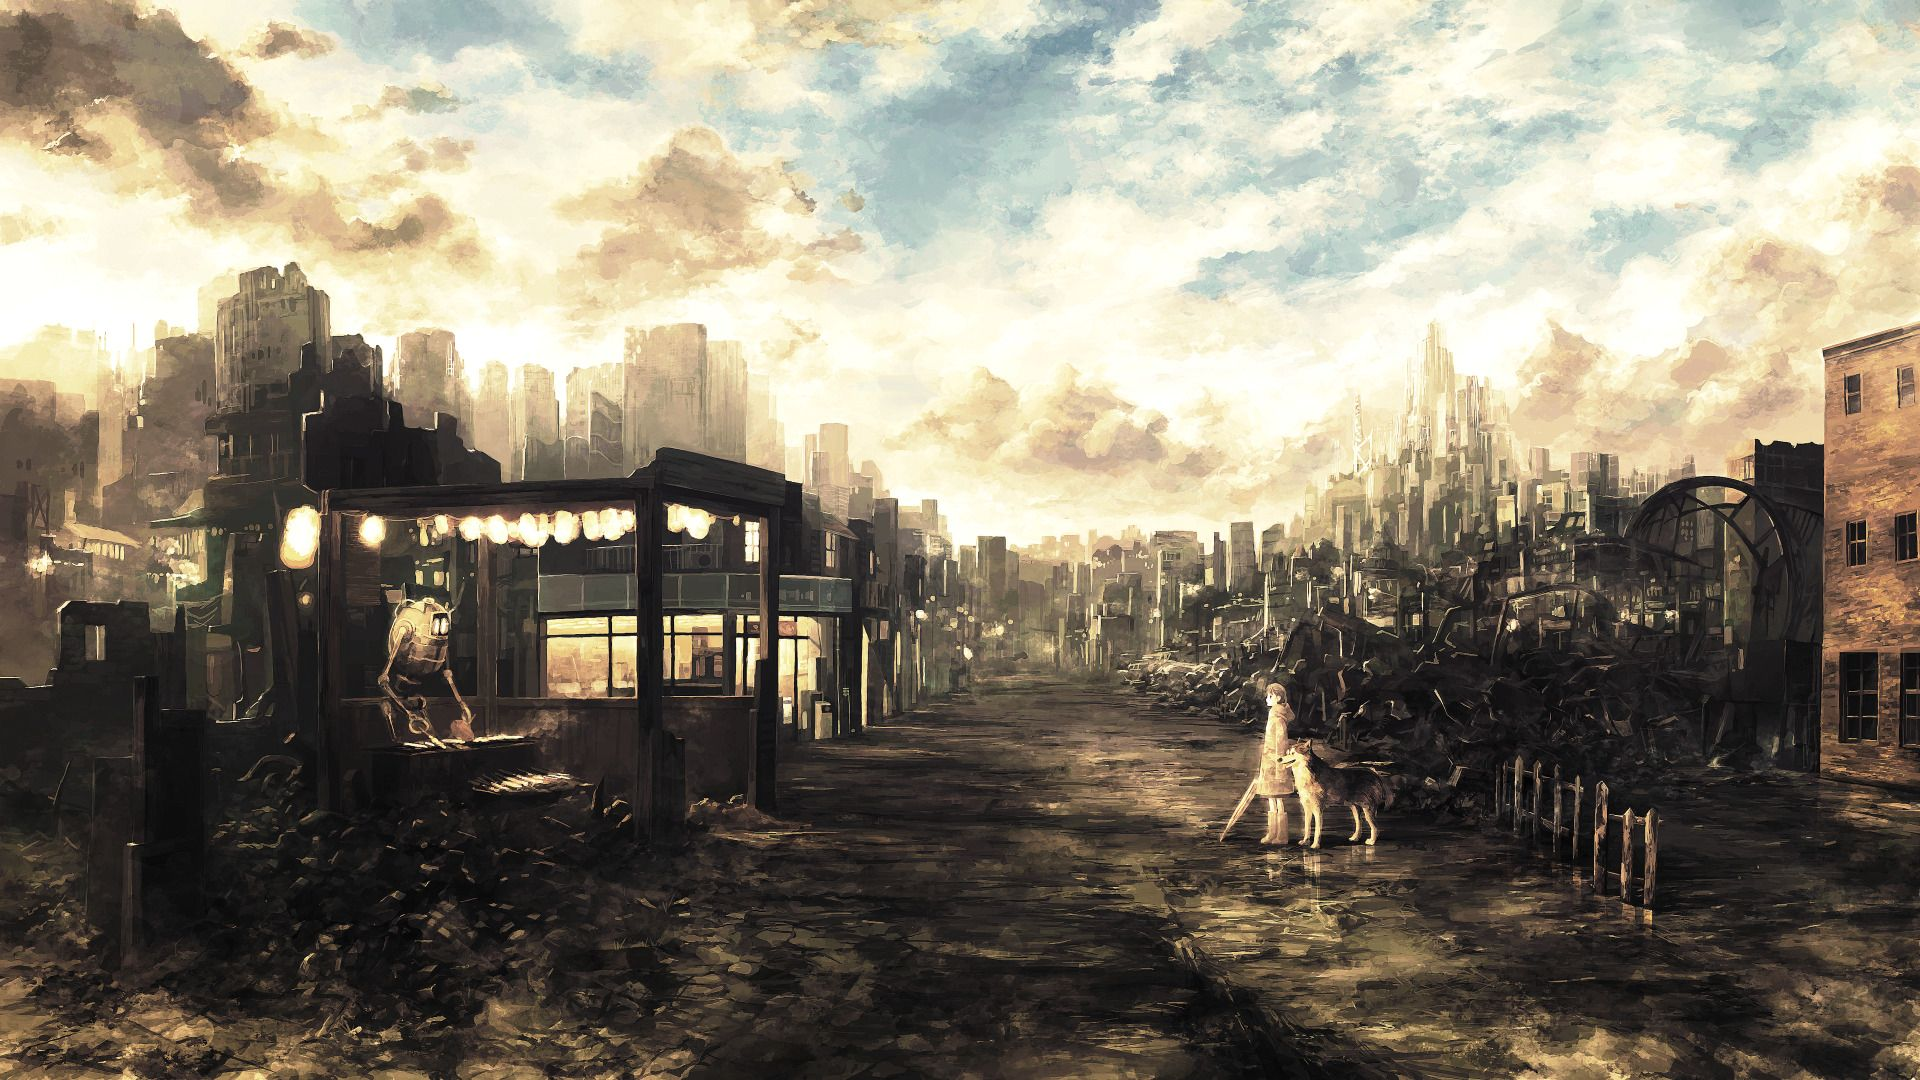 1920x1080 city, Fantasy Art, Anime Girls, Wasteland, Ruin, Apocalyptic, Dog ...